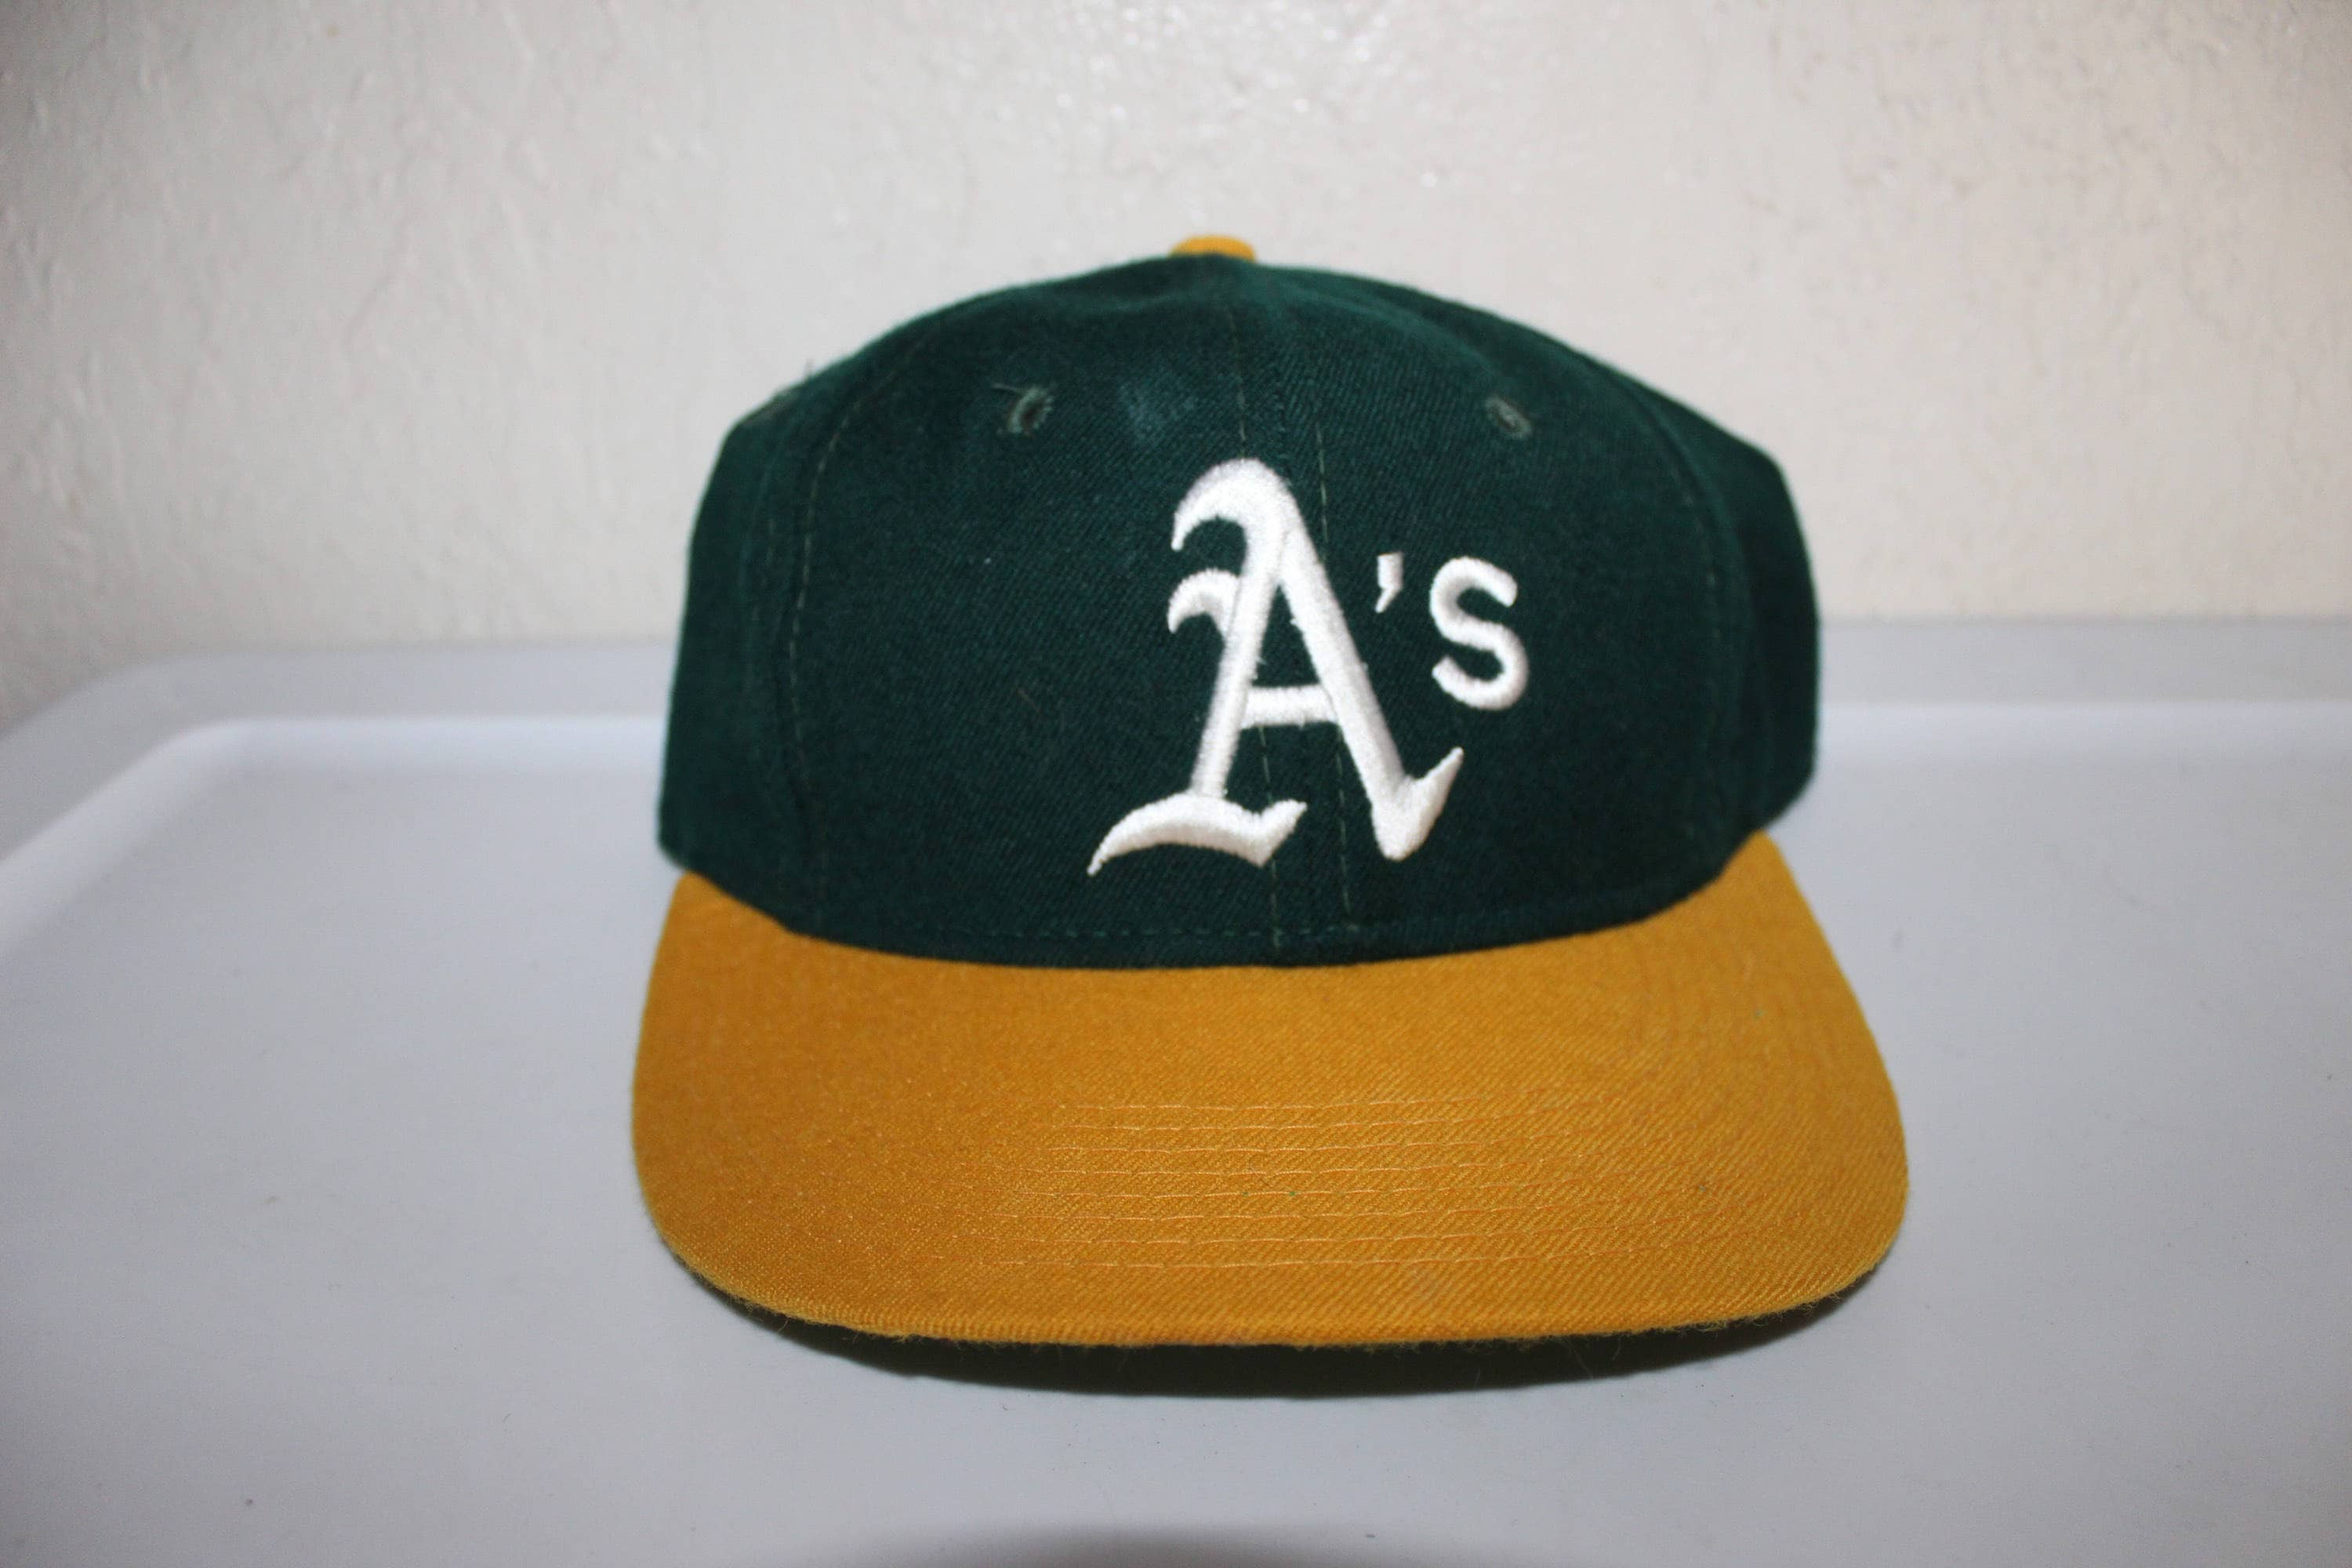 251eb964e24 ... top quality vintage 90s oakland athletics fitted baseball hat size 7 1  8 by new era ...